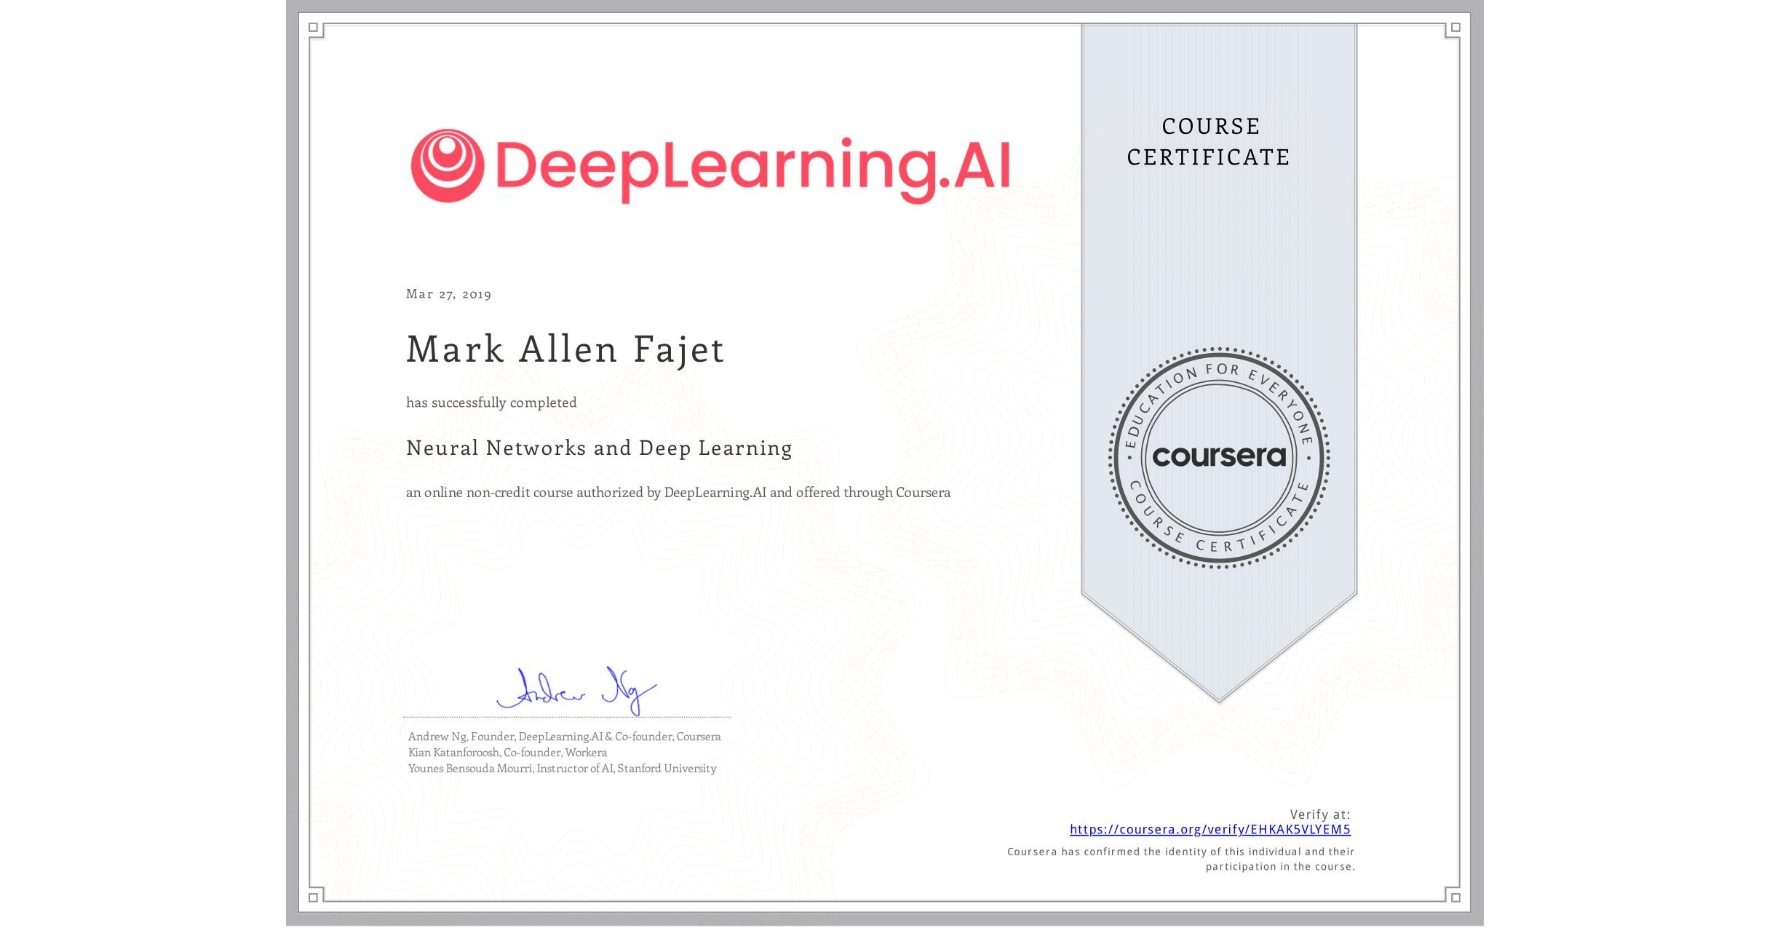 View certificate for Mark Allen Fajet, Neural Networks and Deep Learning, an online non-credit course authorized by DeepLearning.AI and offered through Coursera